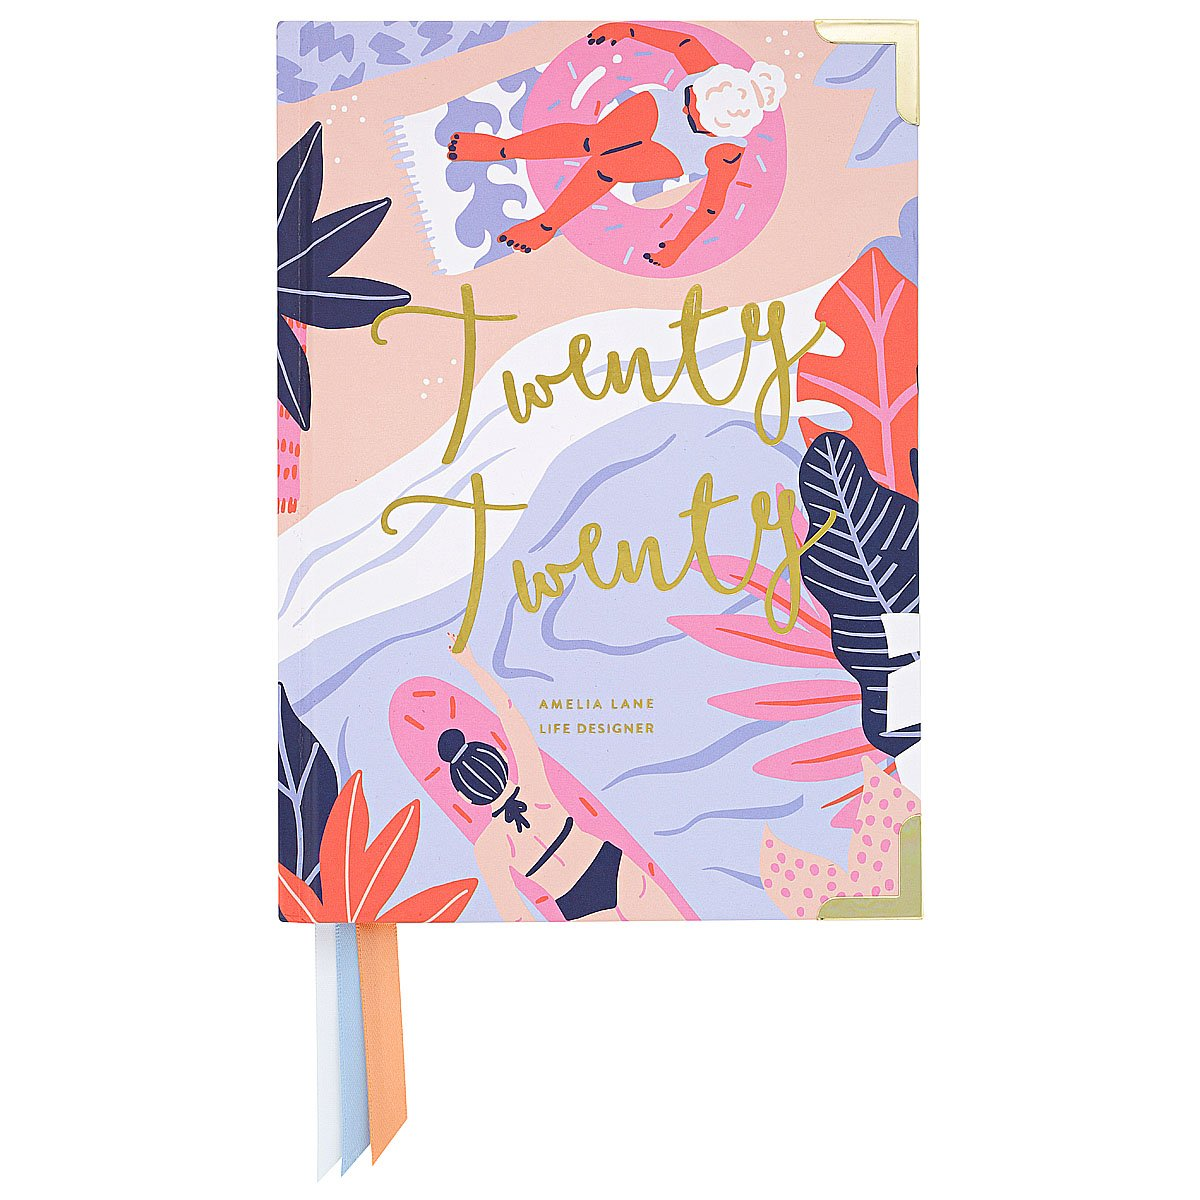 2020 Amelia Lane Life Designer, Compact Weekly (Summer Days)